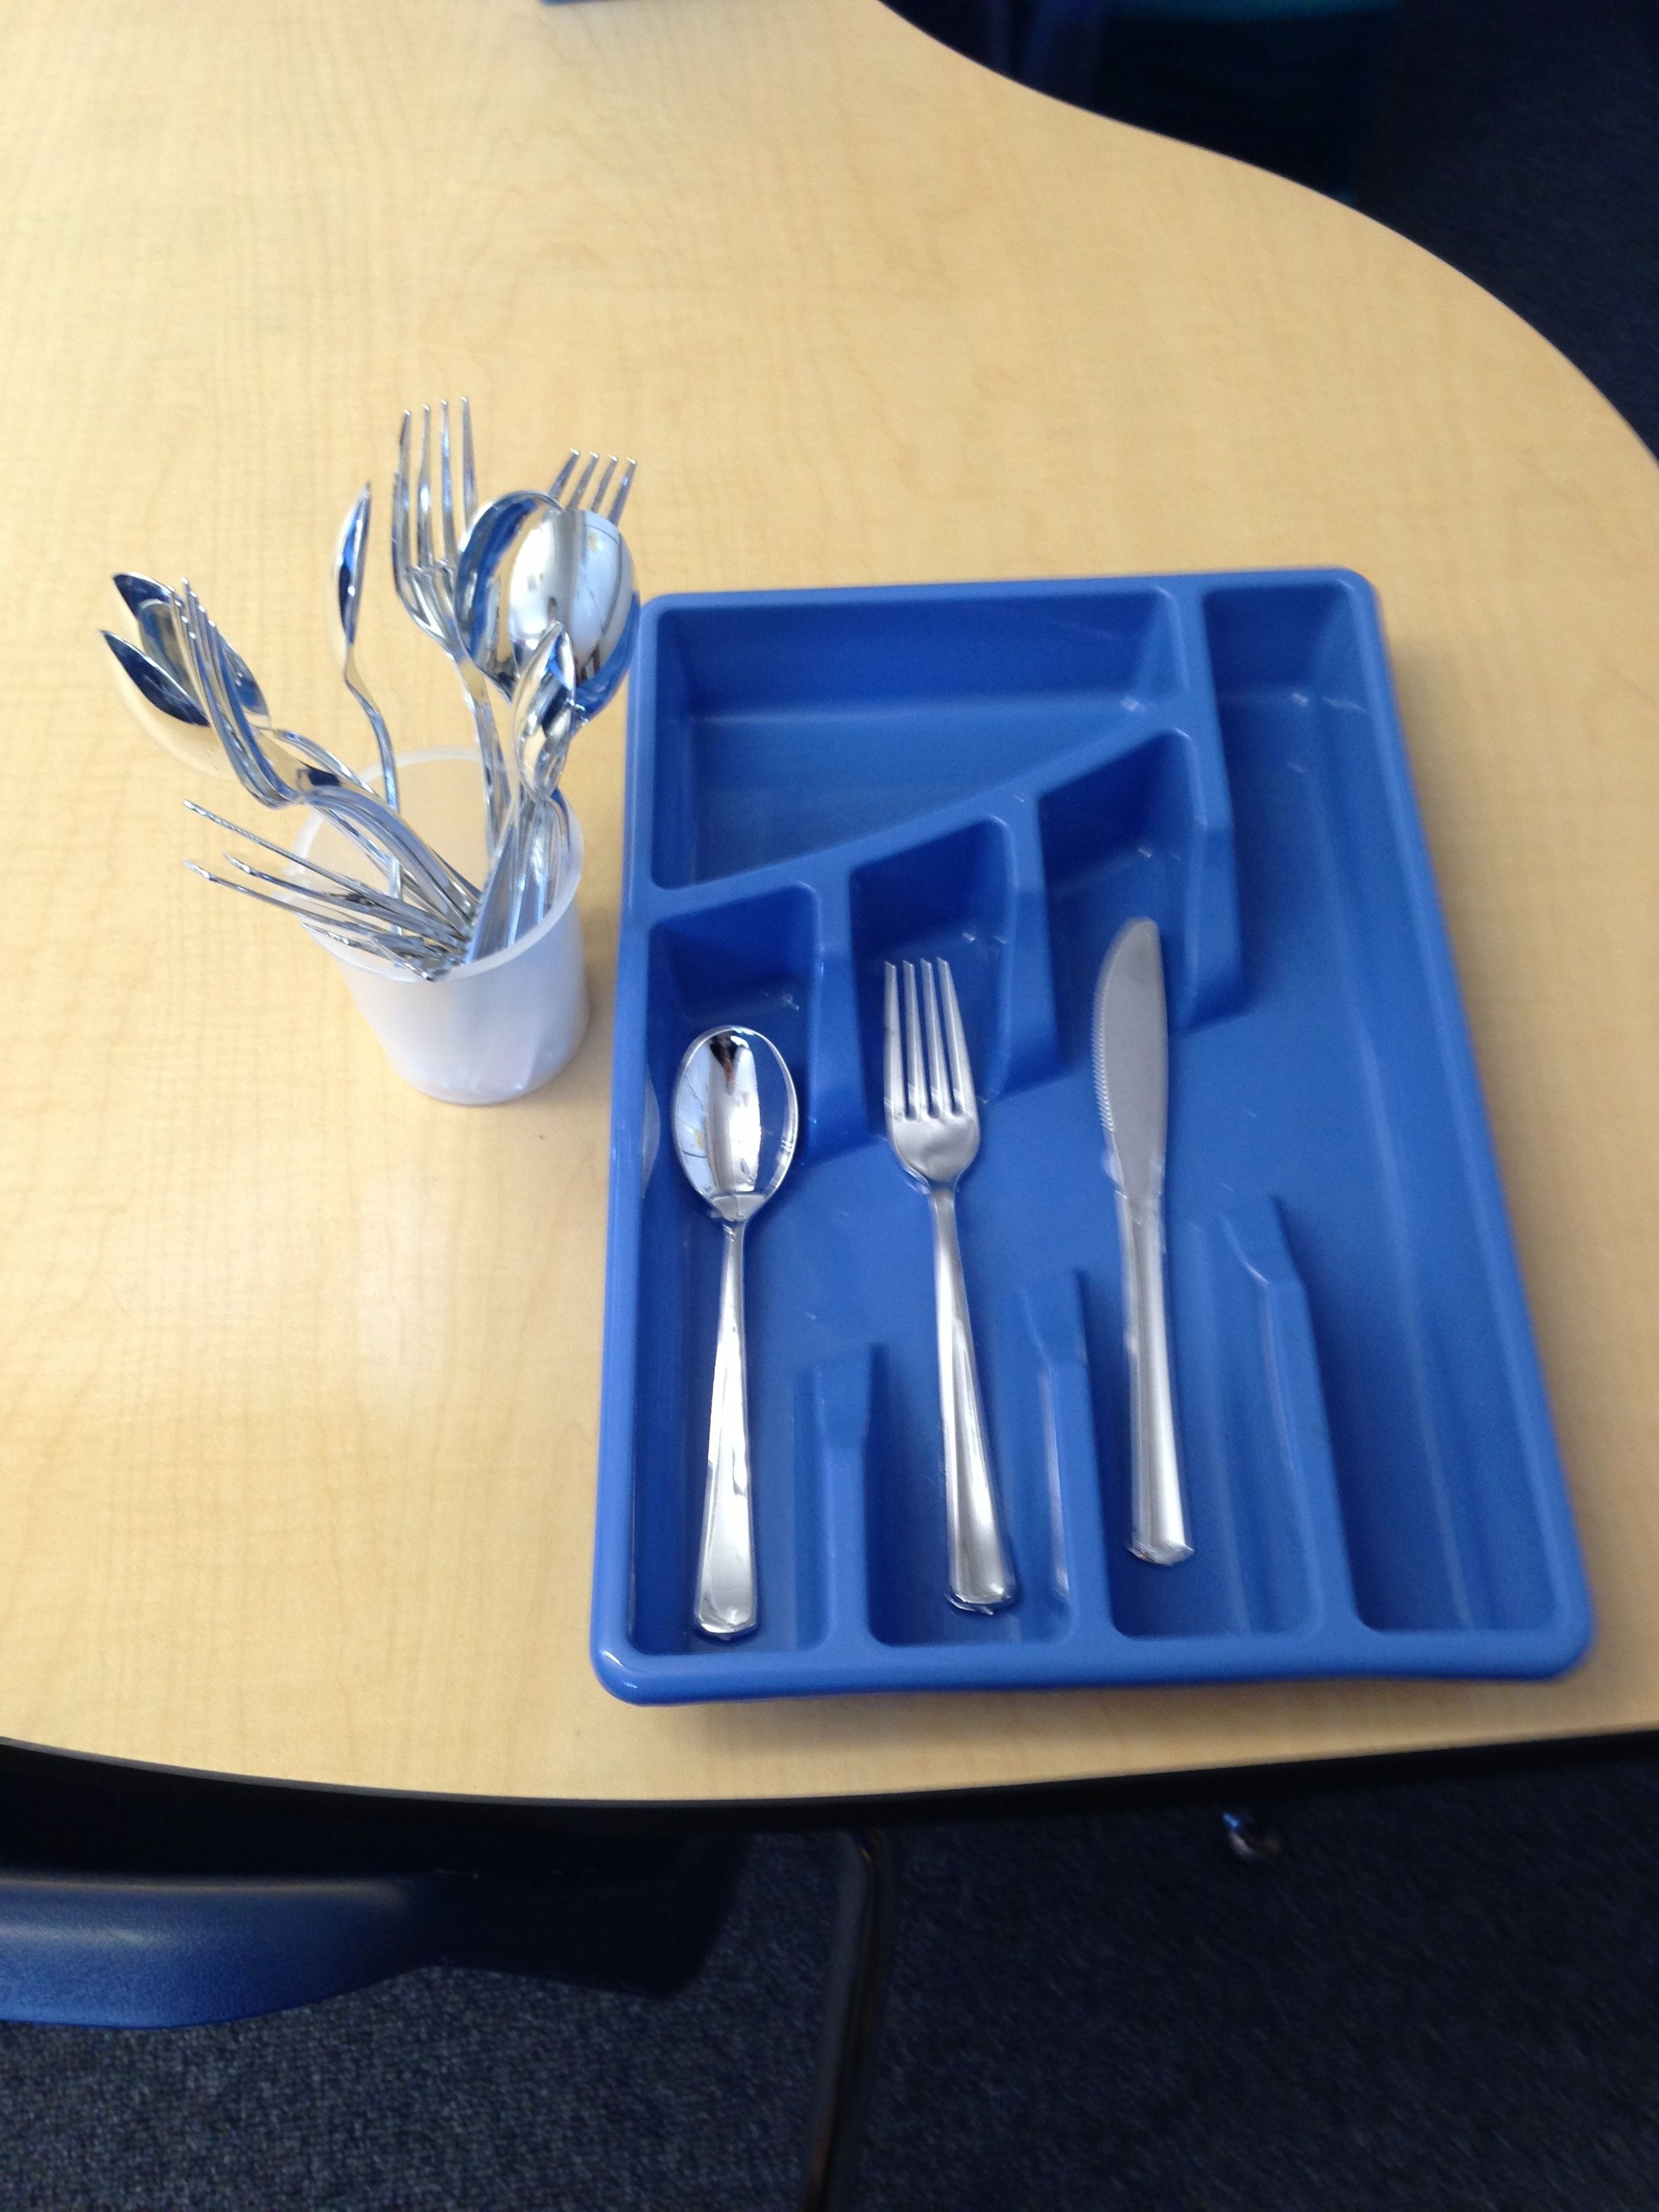 Sorting/life skills... Find items at the dollar tree, use plastic spoons, forks, knives